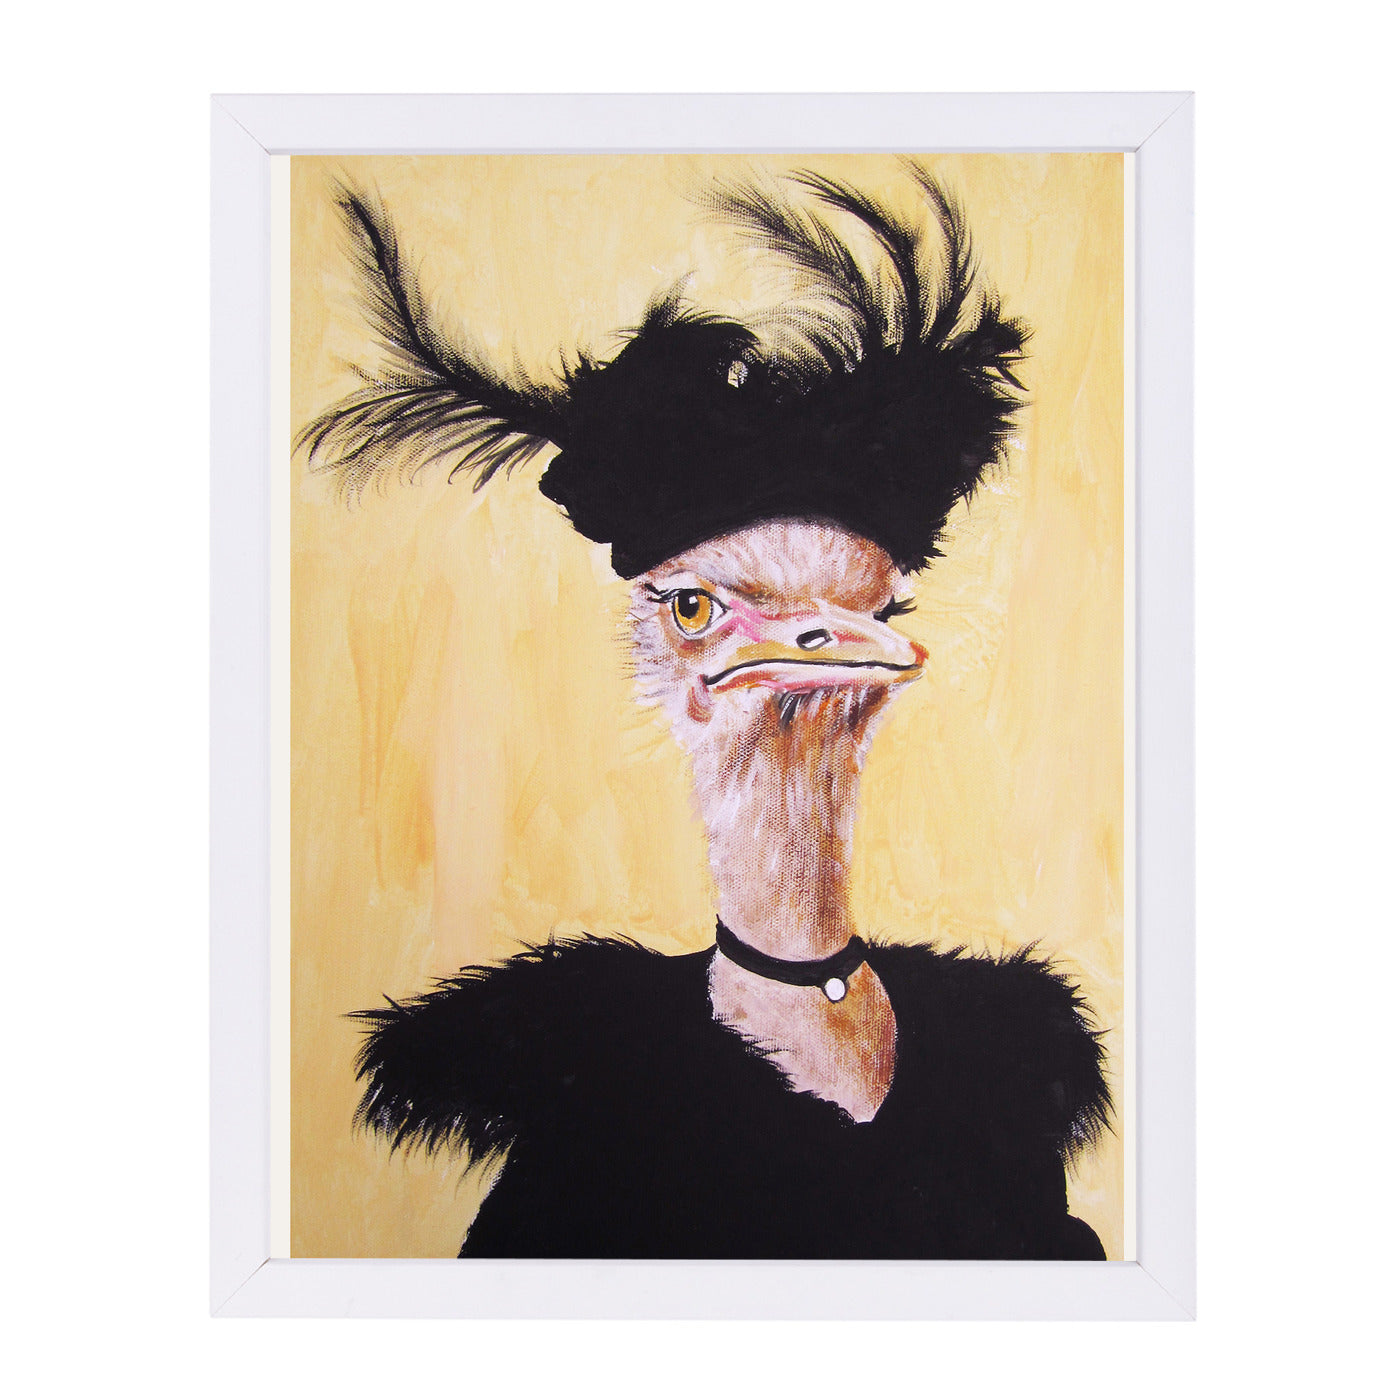 Jetset Ostrich By Coco De Paris - White Framed Print - Wall Art - Americanflat